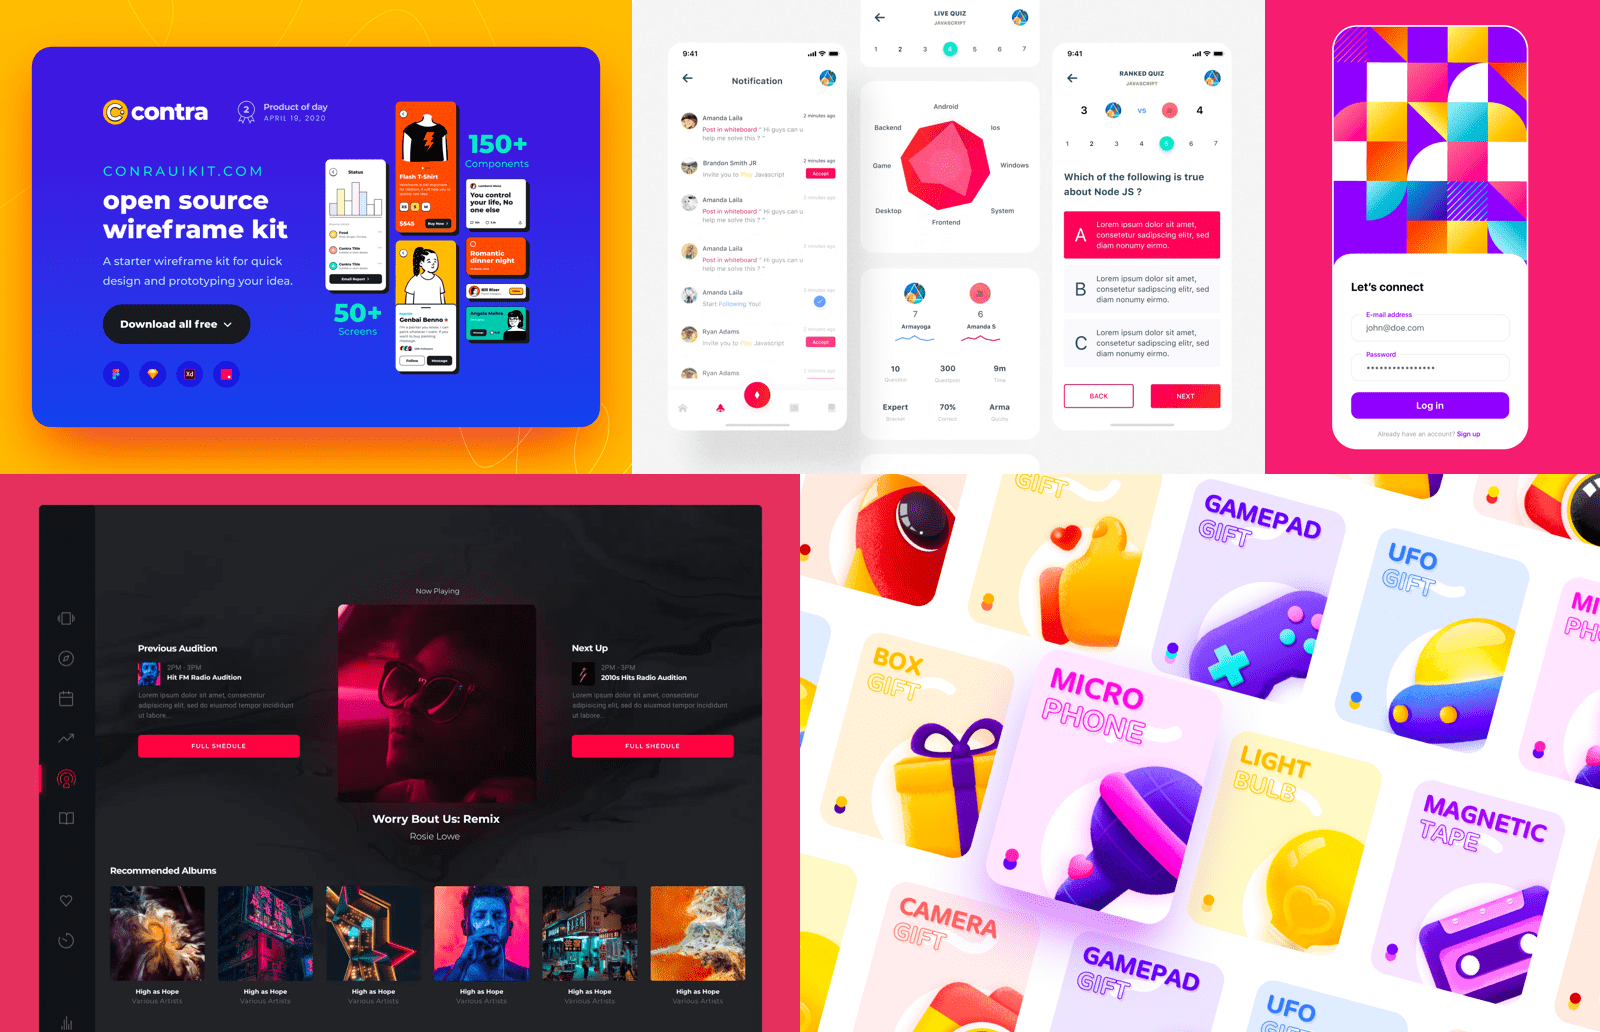 Bold colors as a trend in UX/UI design